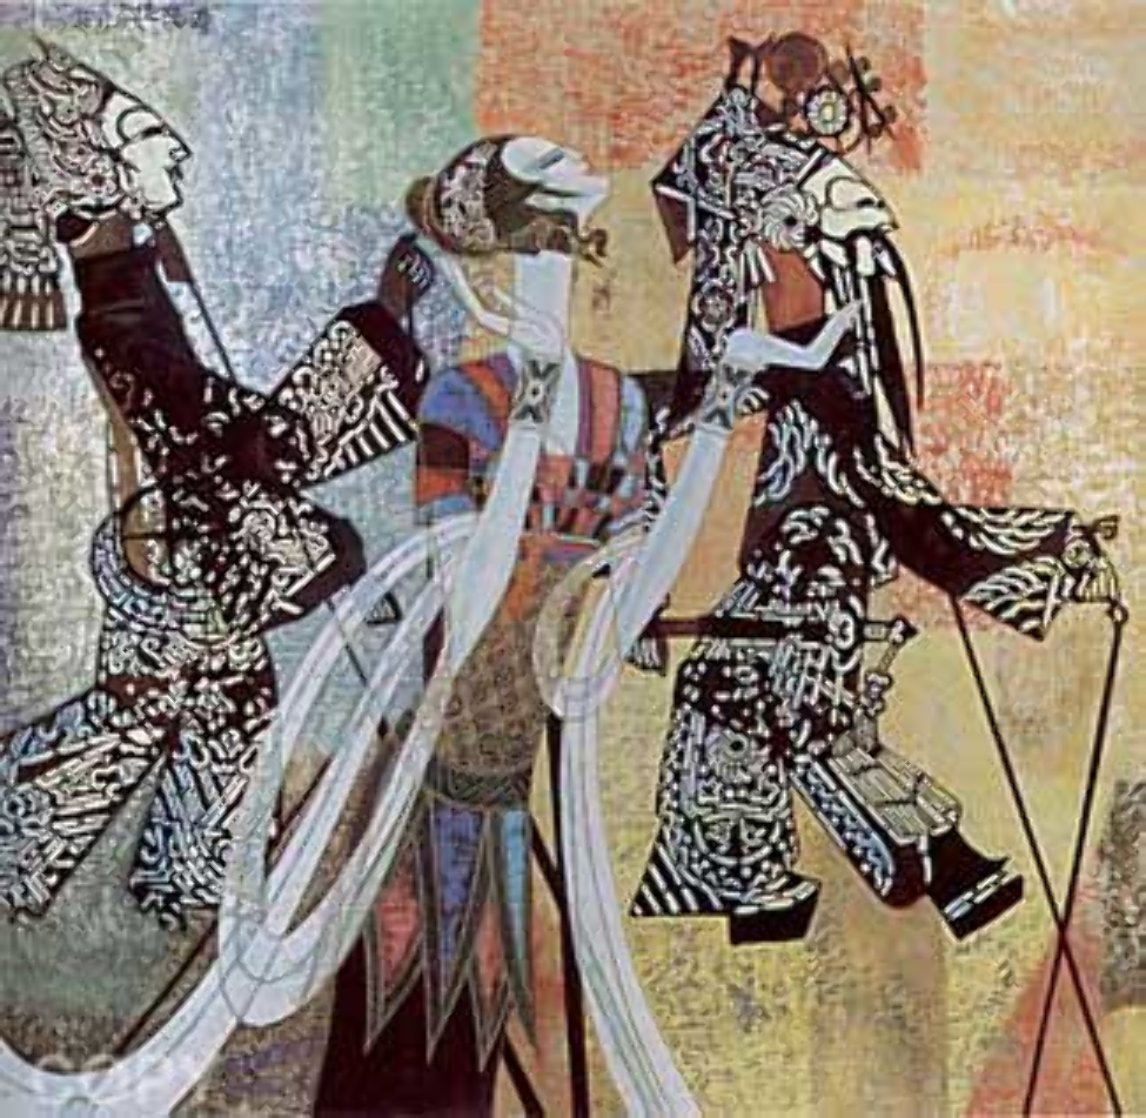 Shadow Play 1992 Limited Edition Print by Shao Kuang Ting